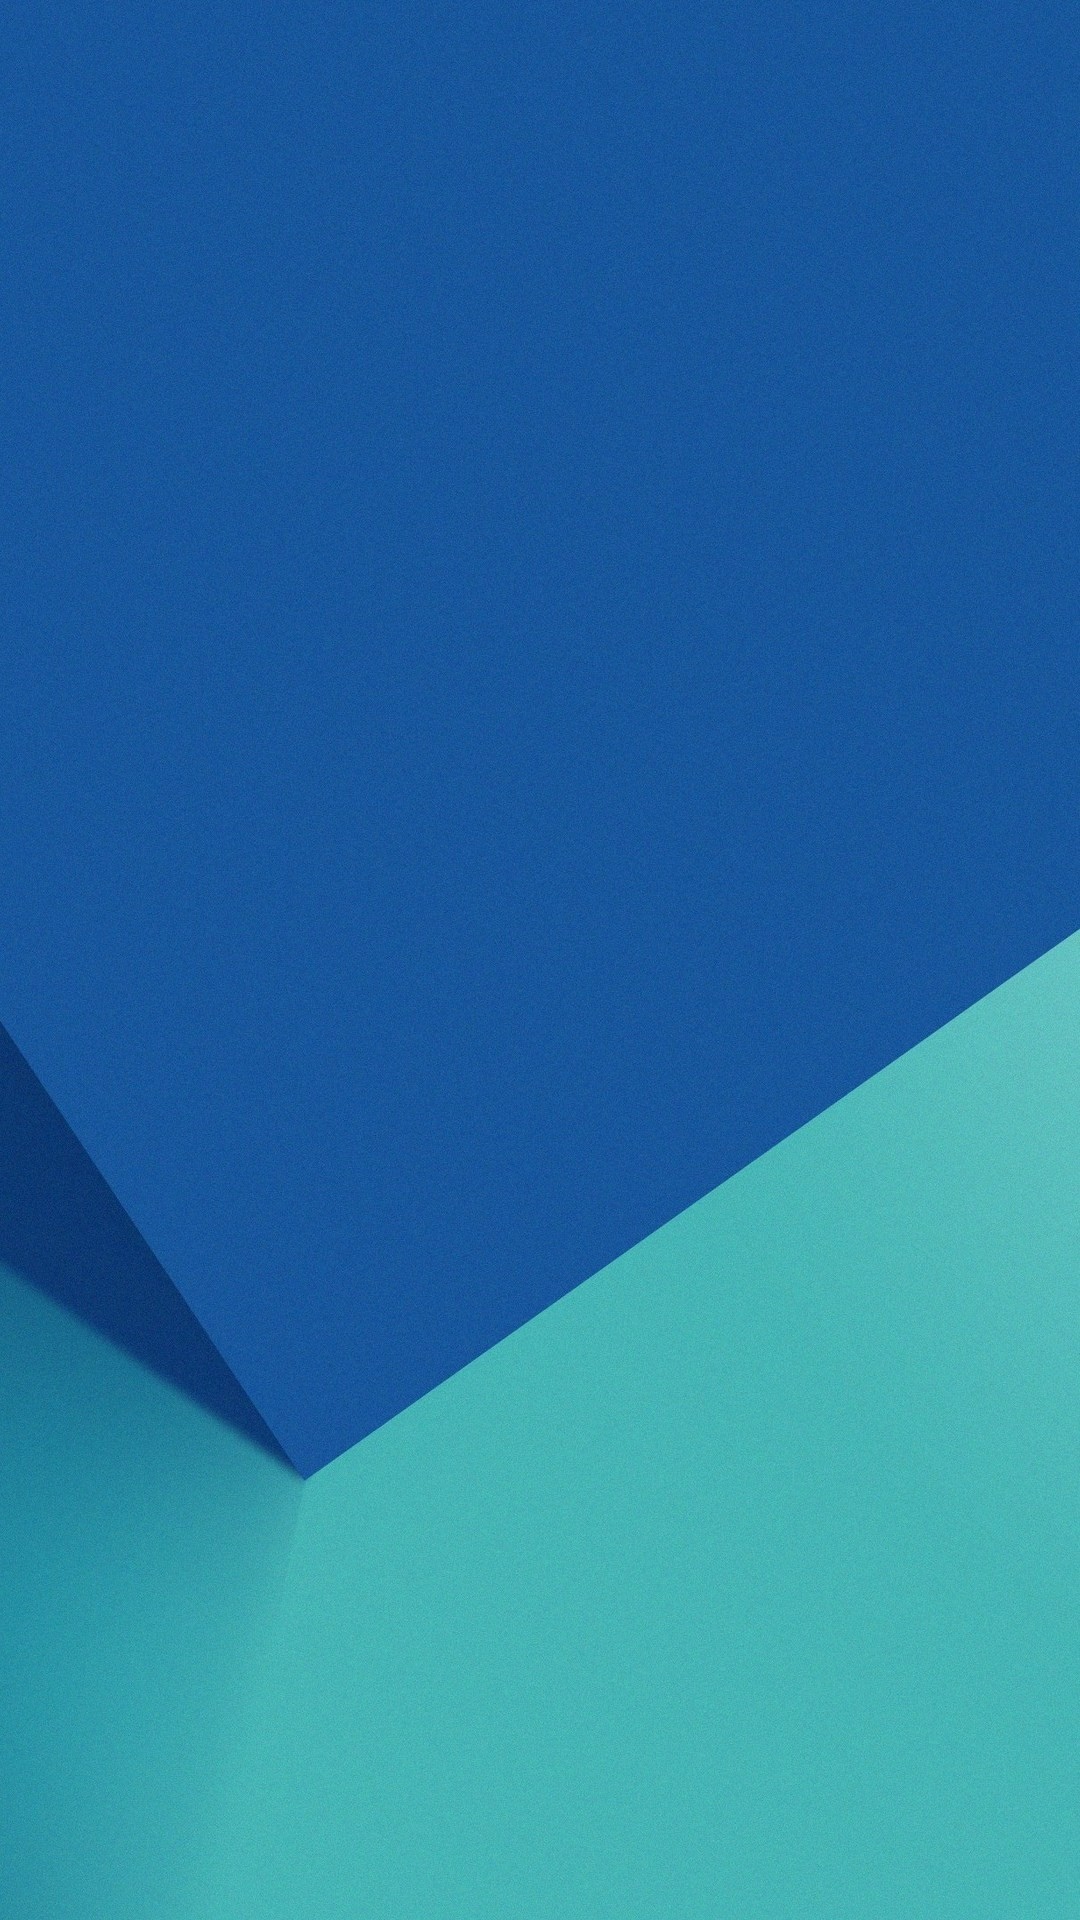 Material Design Stock Y7 Wallpaper - [1080x1920]